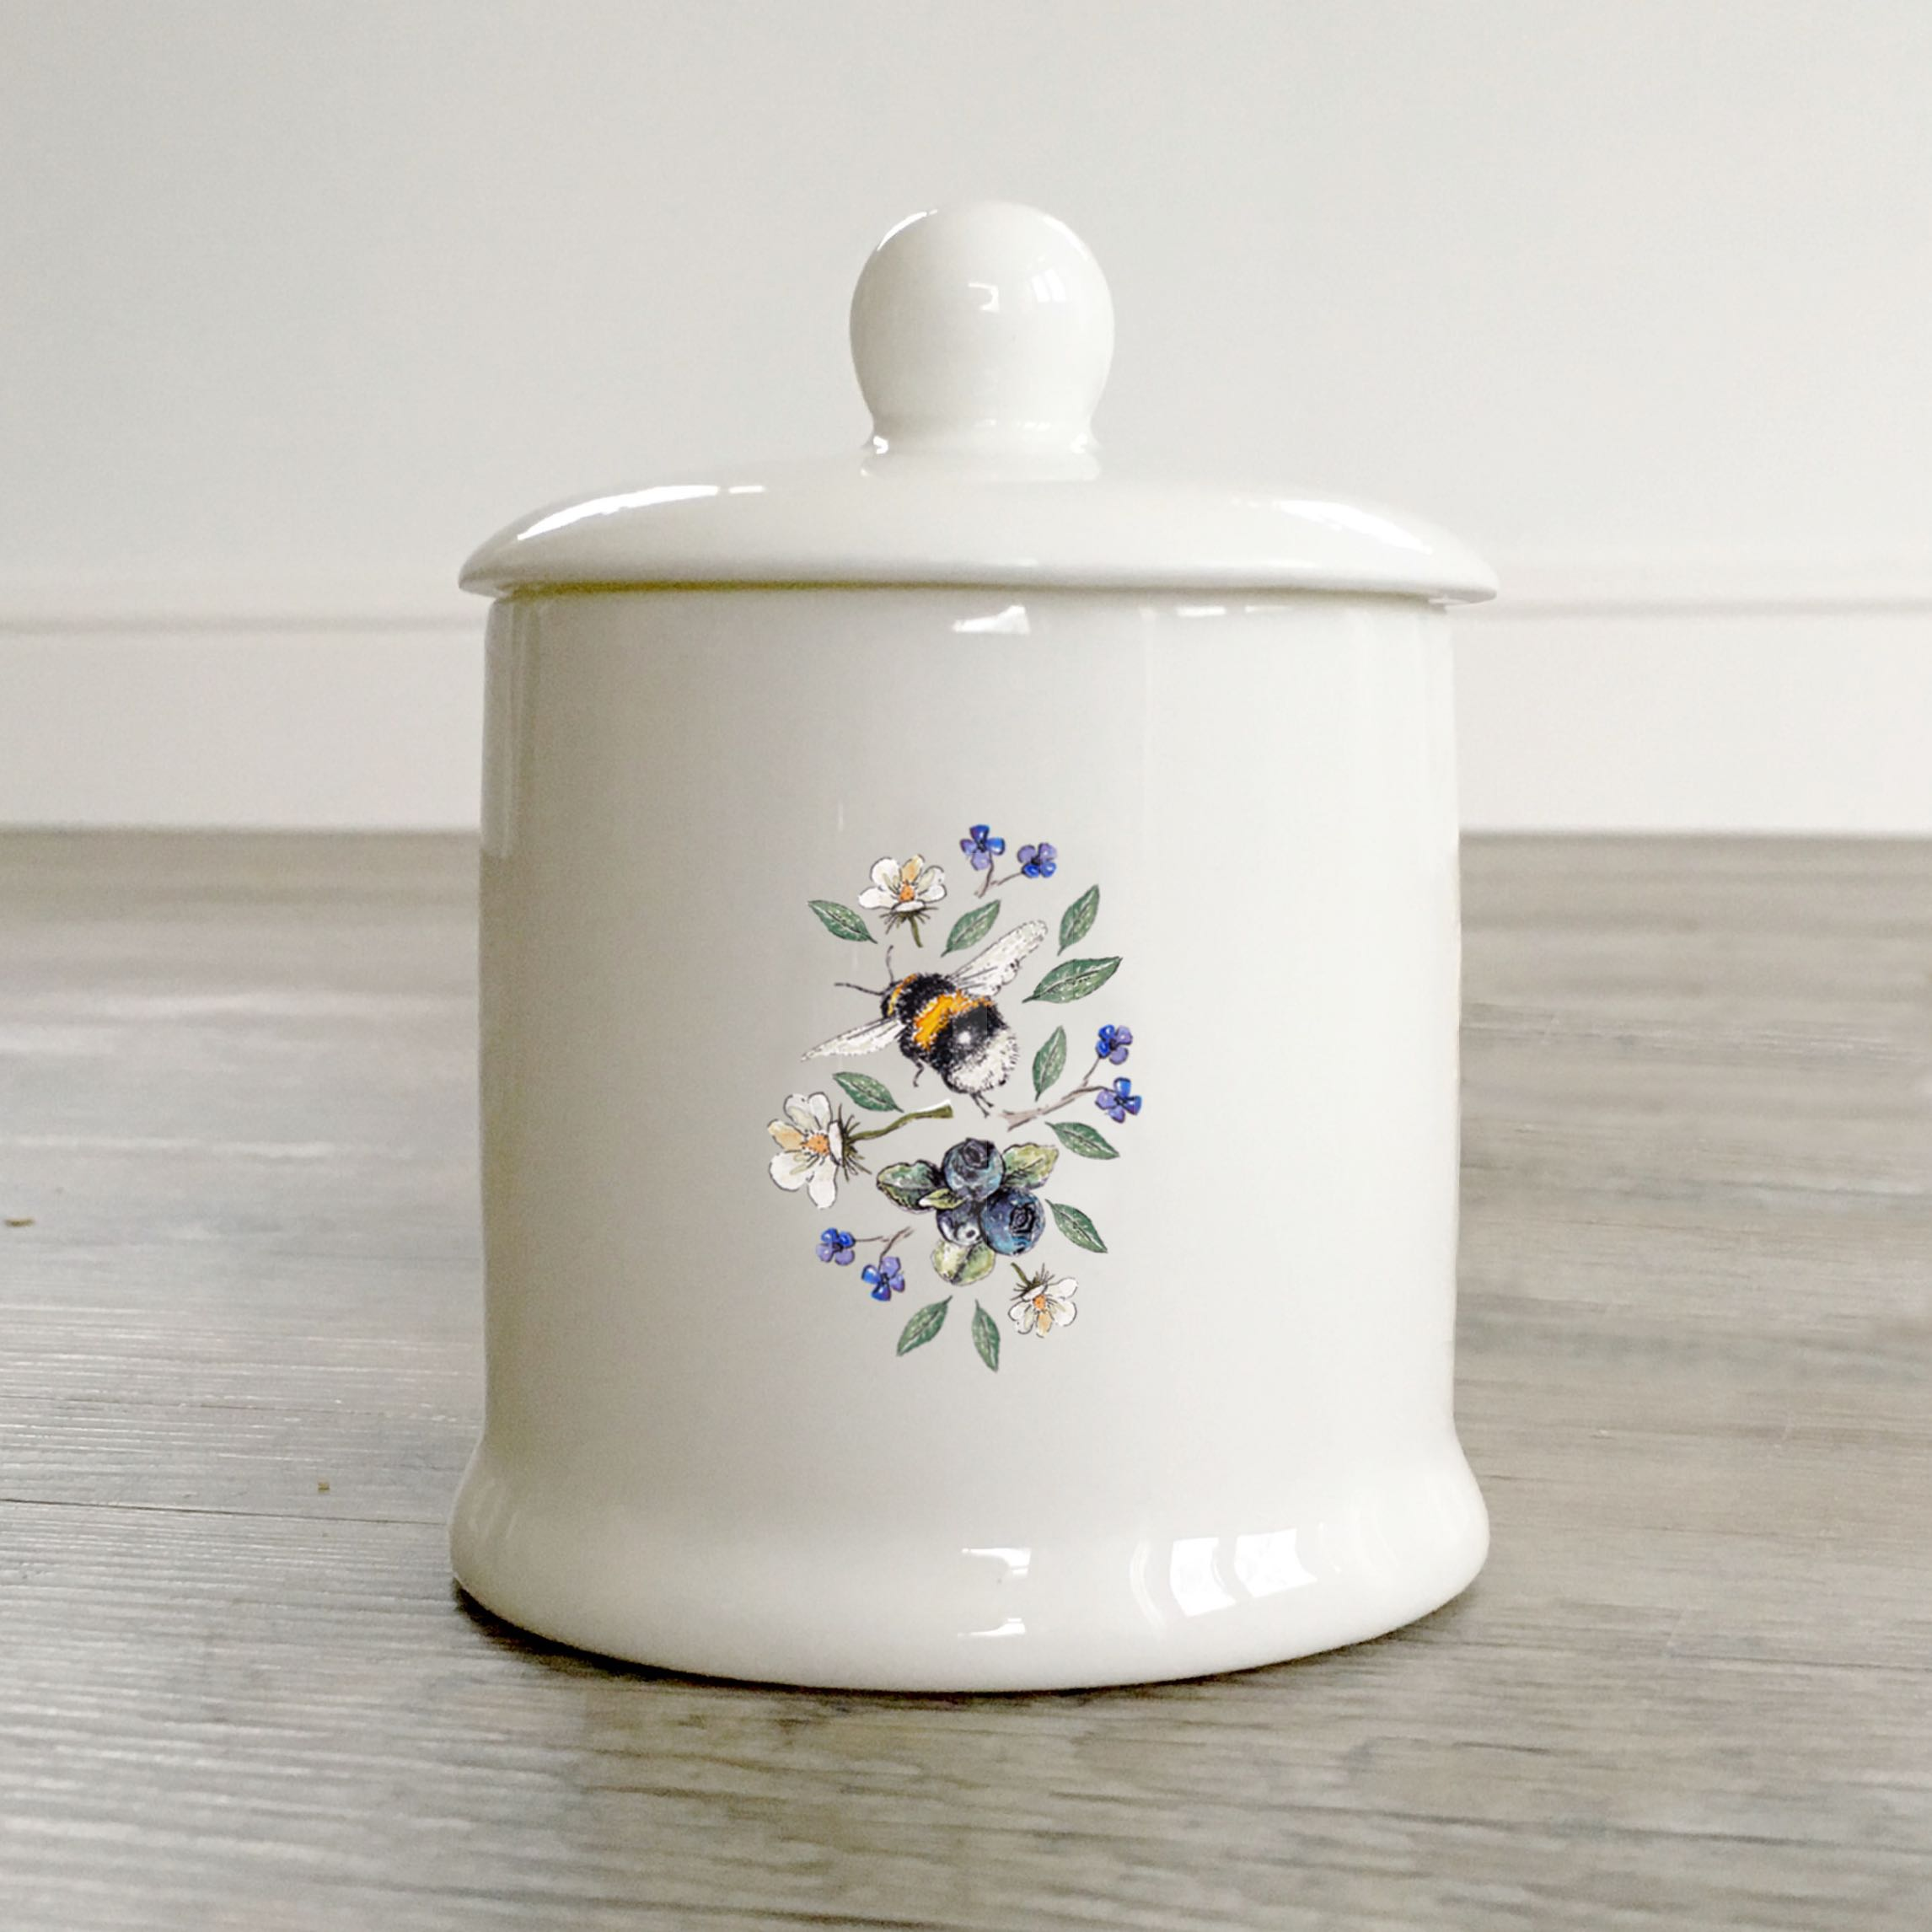 Wild Flower Meadows Bee Sugar & Condiment Pot in a Gift Box